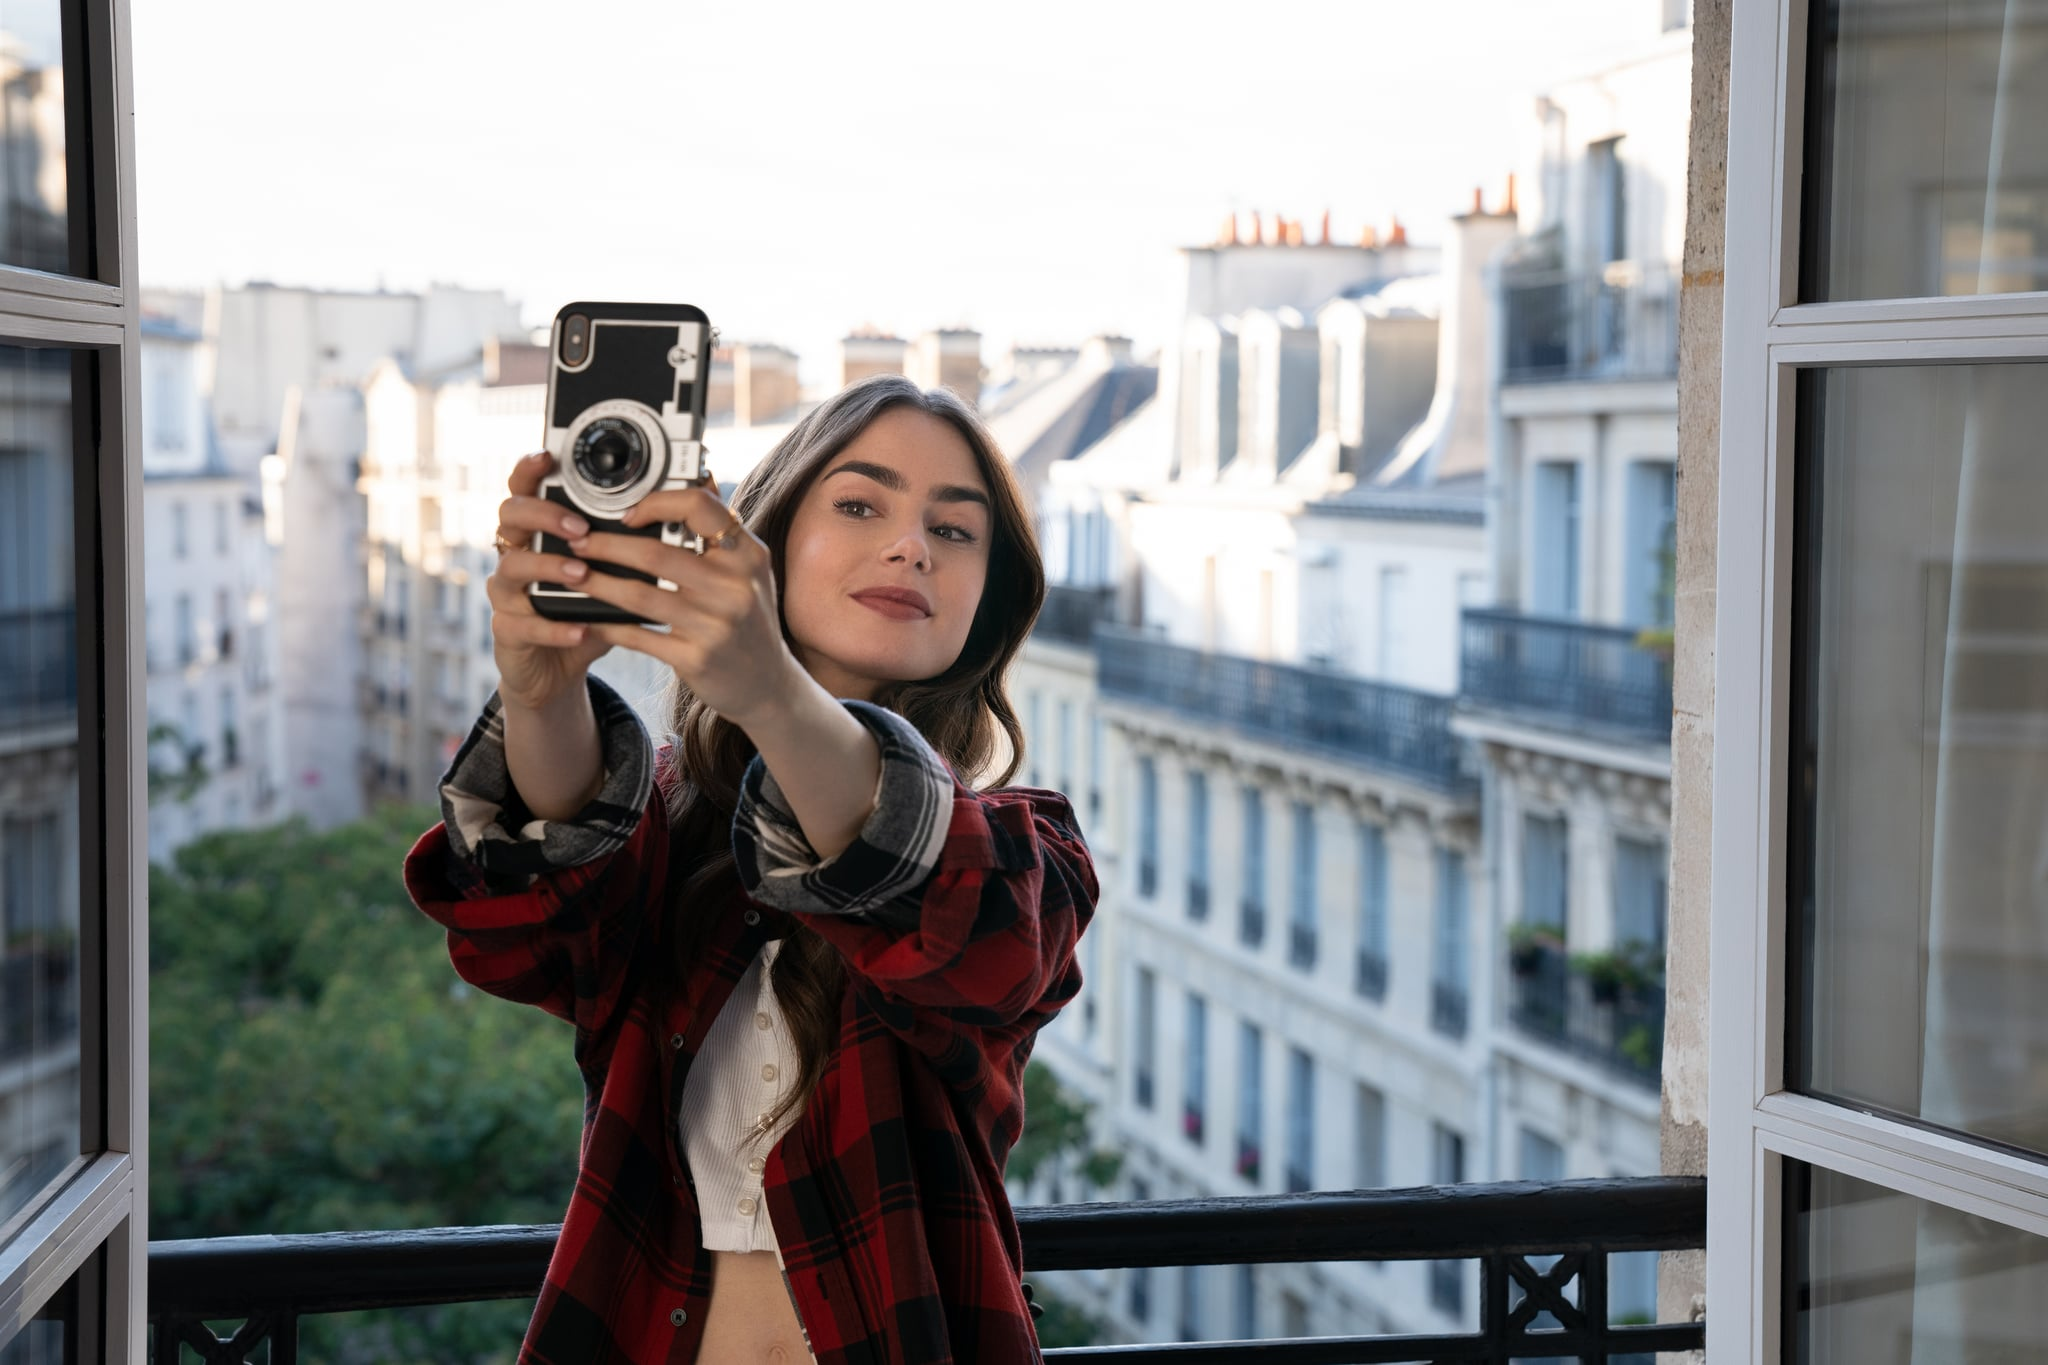 EMILY IN PARIS (L to R) LILY COLLINS as EMILY in episode 101 of EMILY IN PARIS Cr. STEPHANIE BRANCHU/NETFLIX  2020